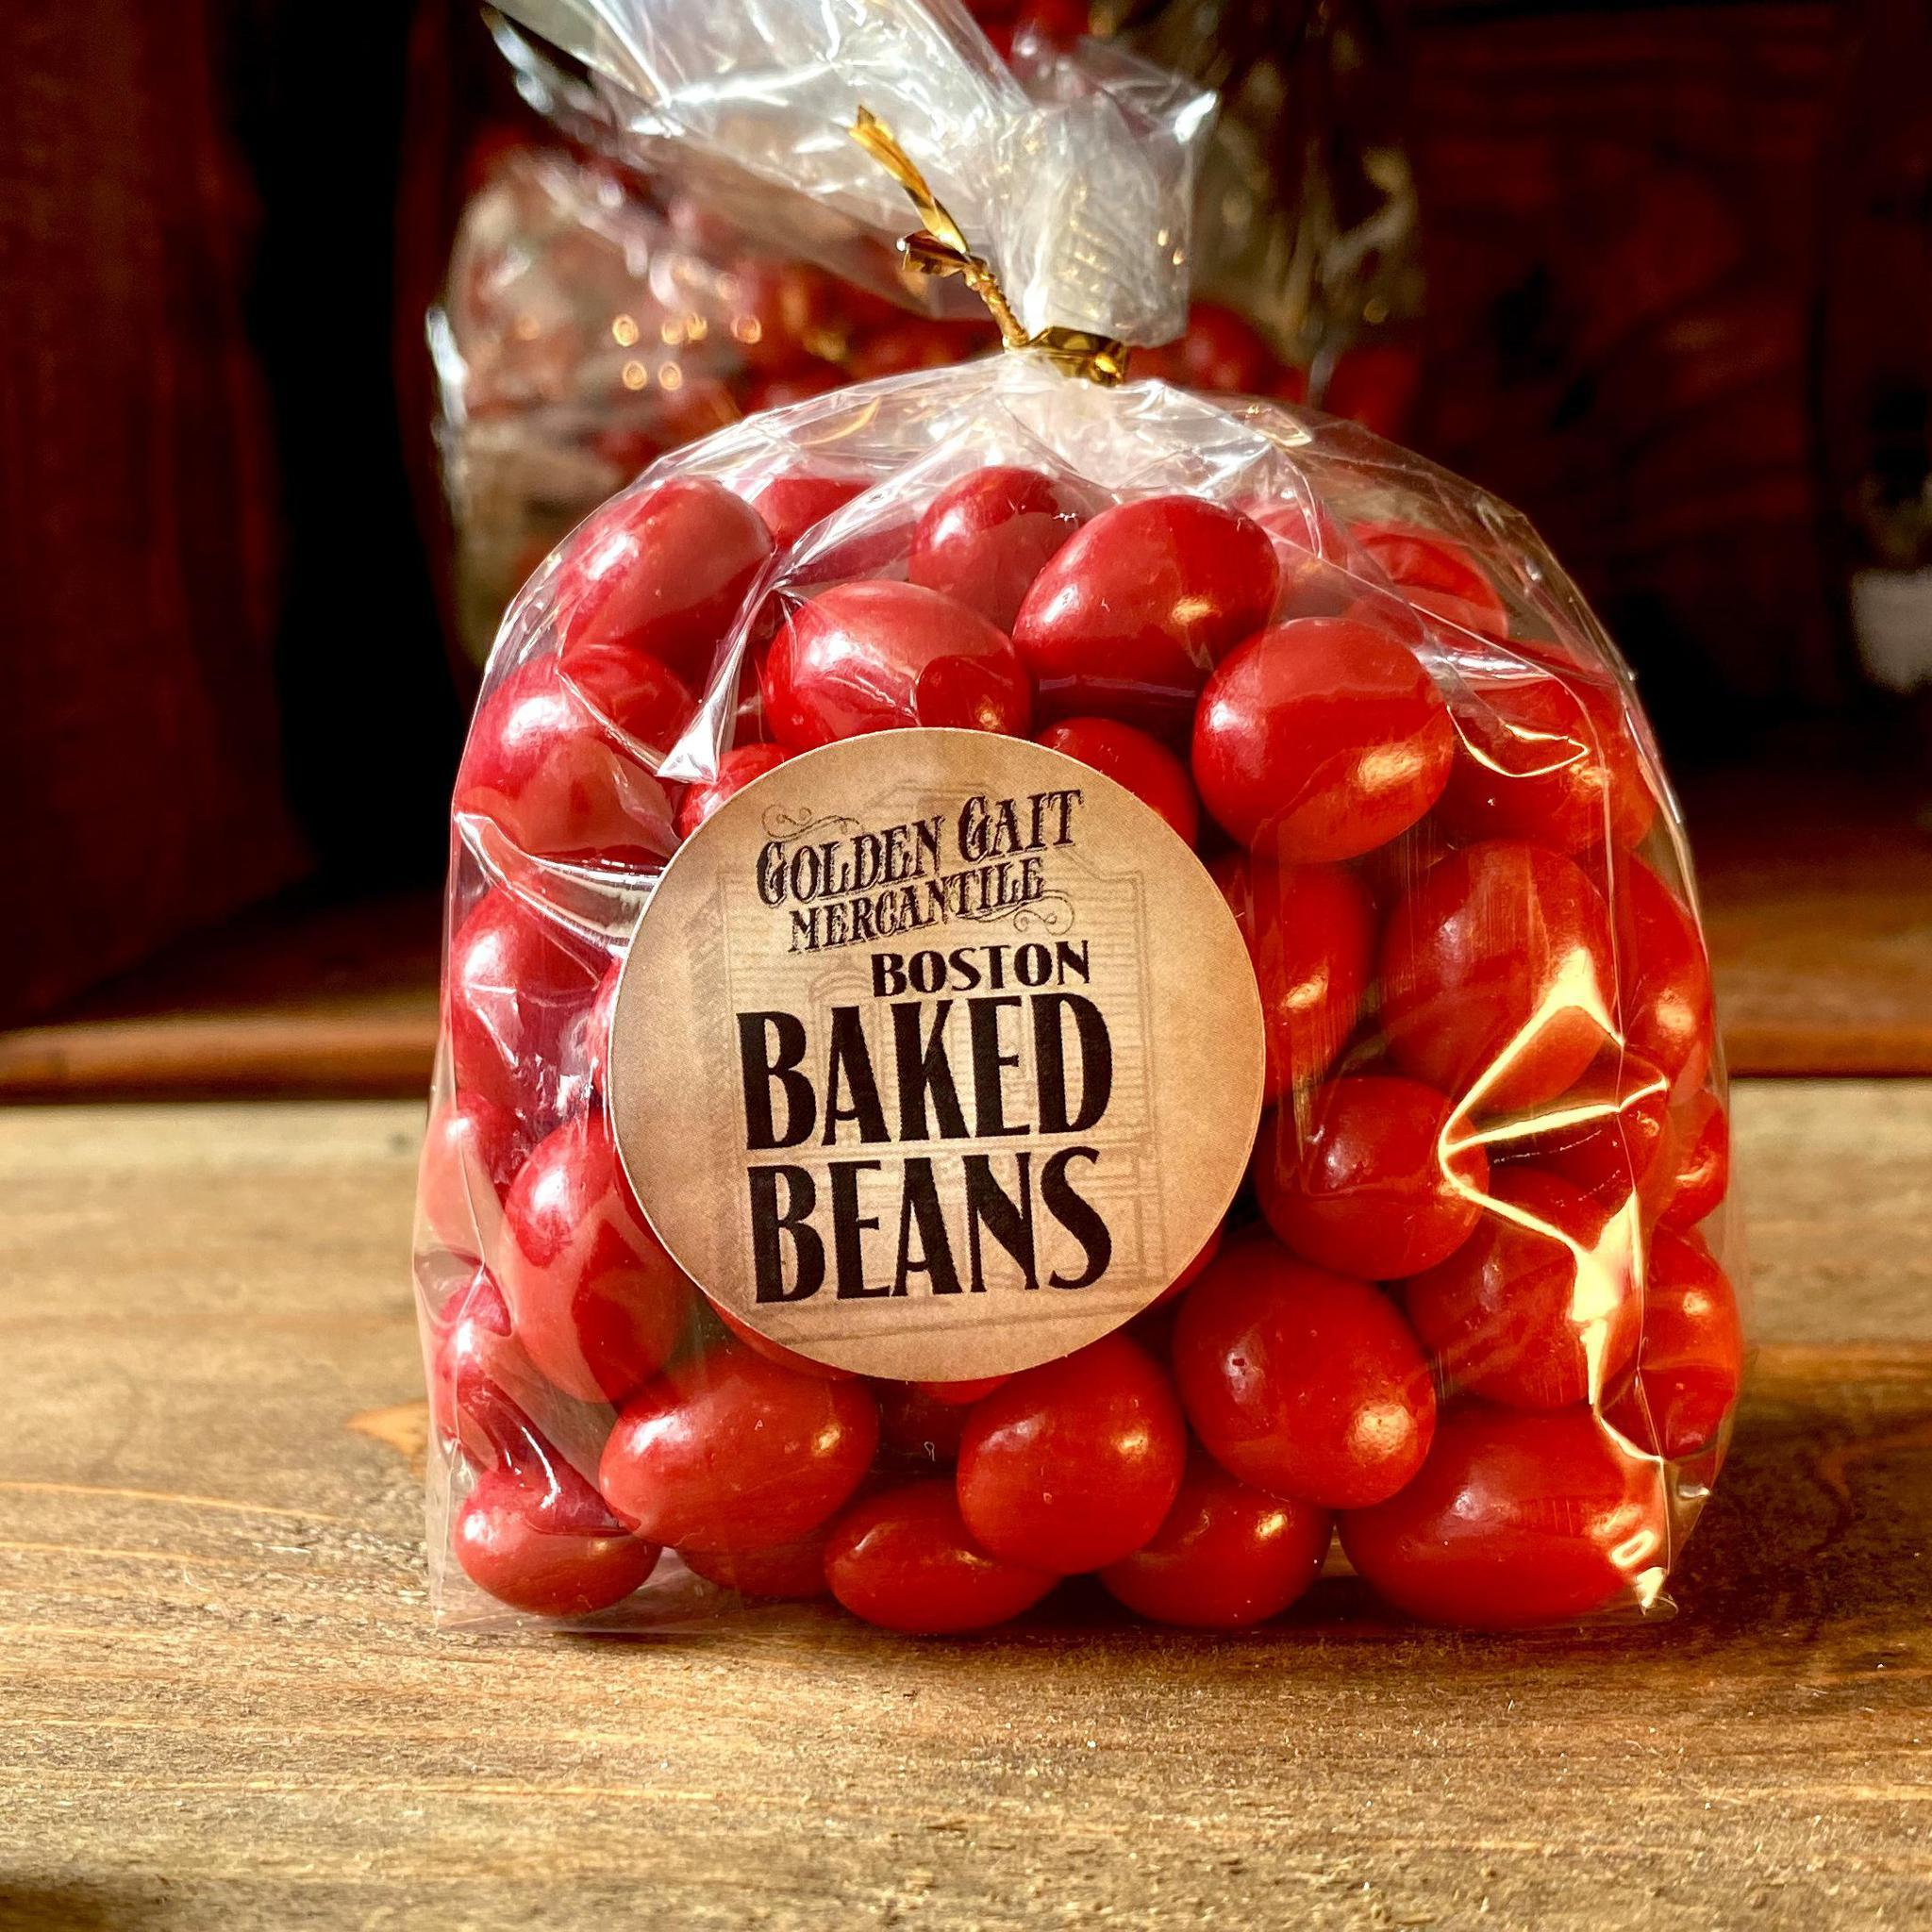 Boston Baked Beans By The Golden Gait Mercantile